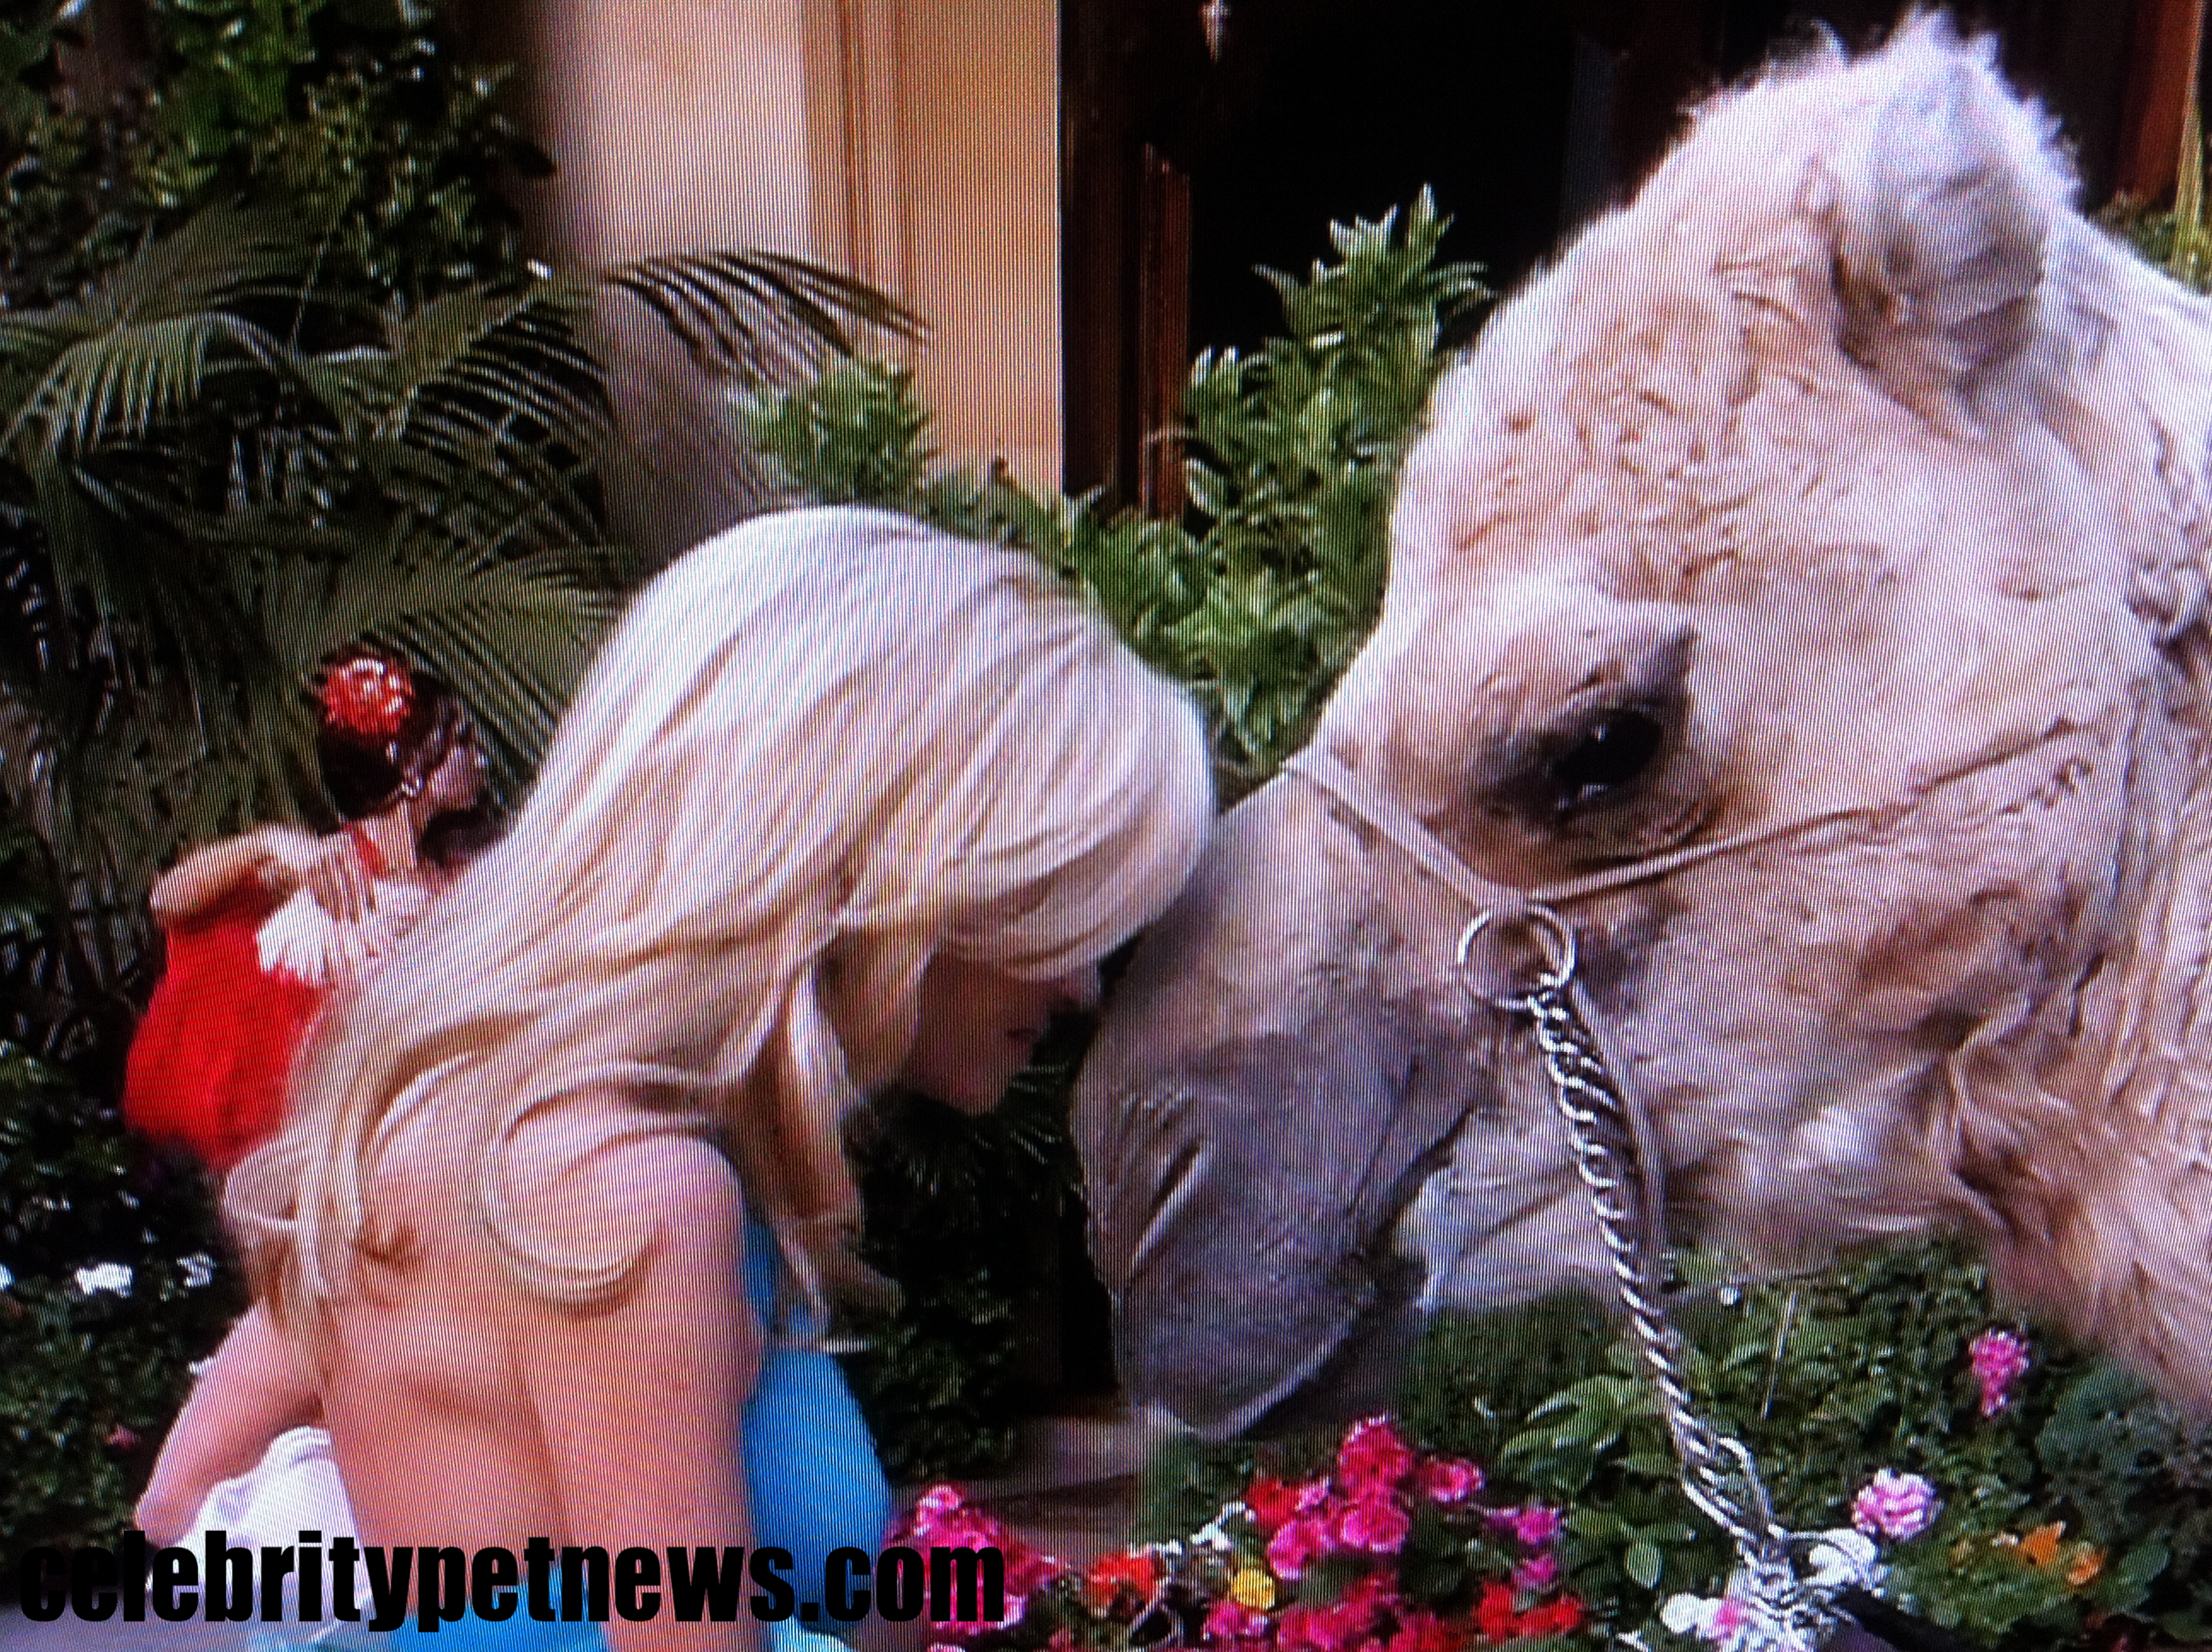 Camille gets very up close and personal with the camel, who leans in